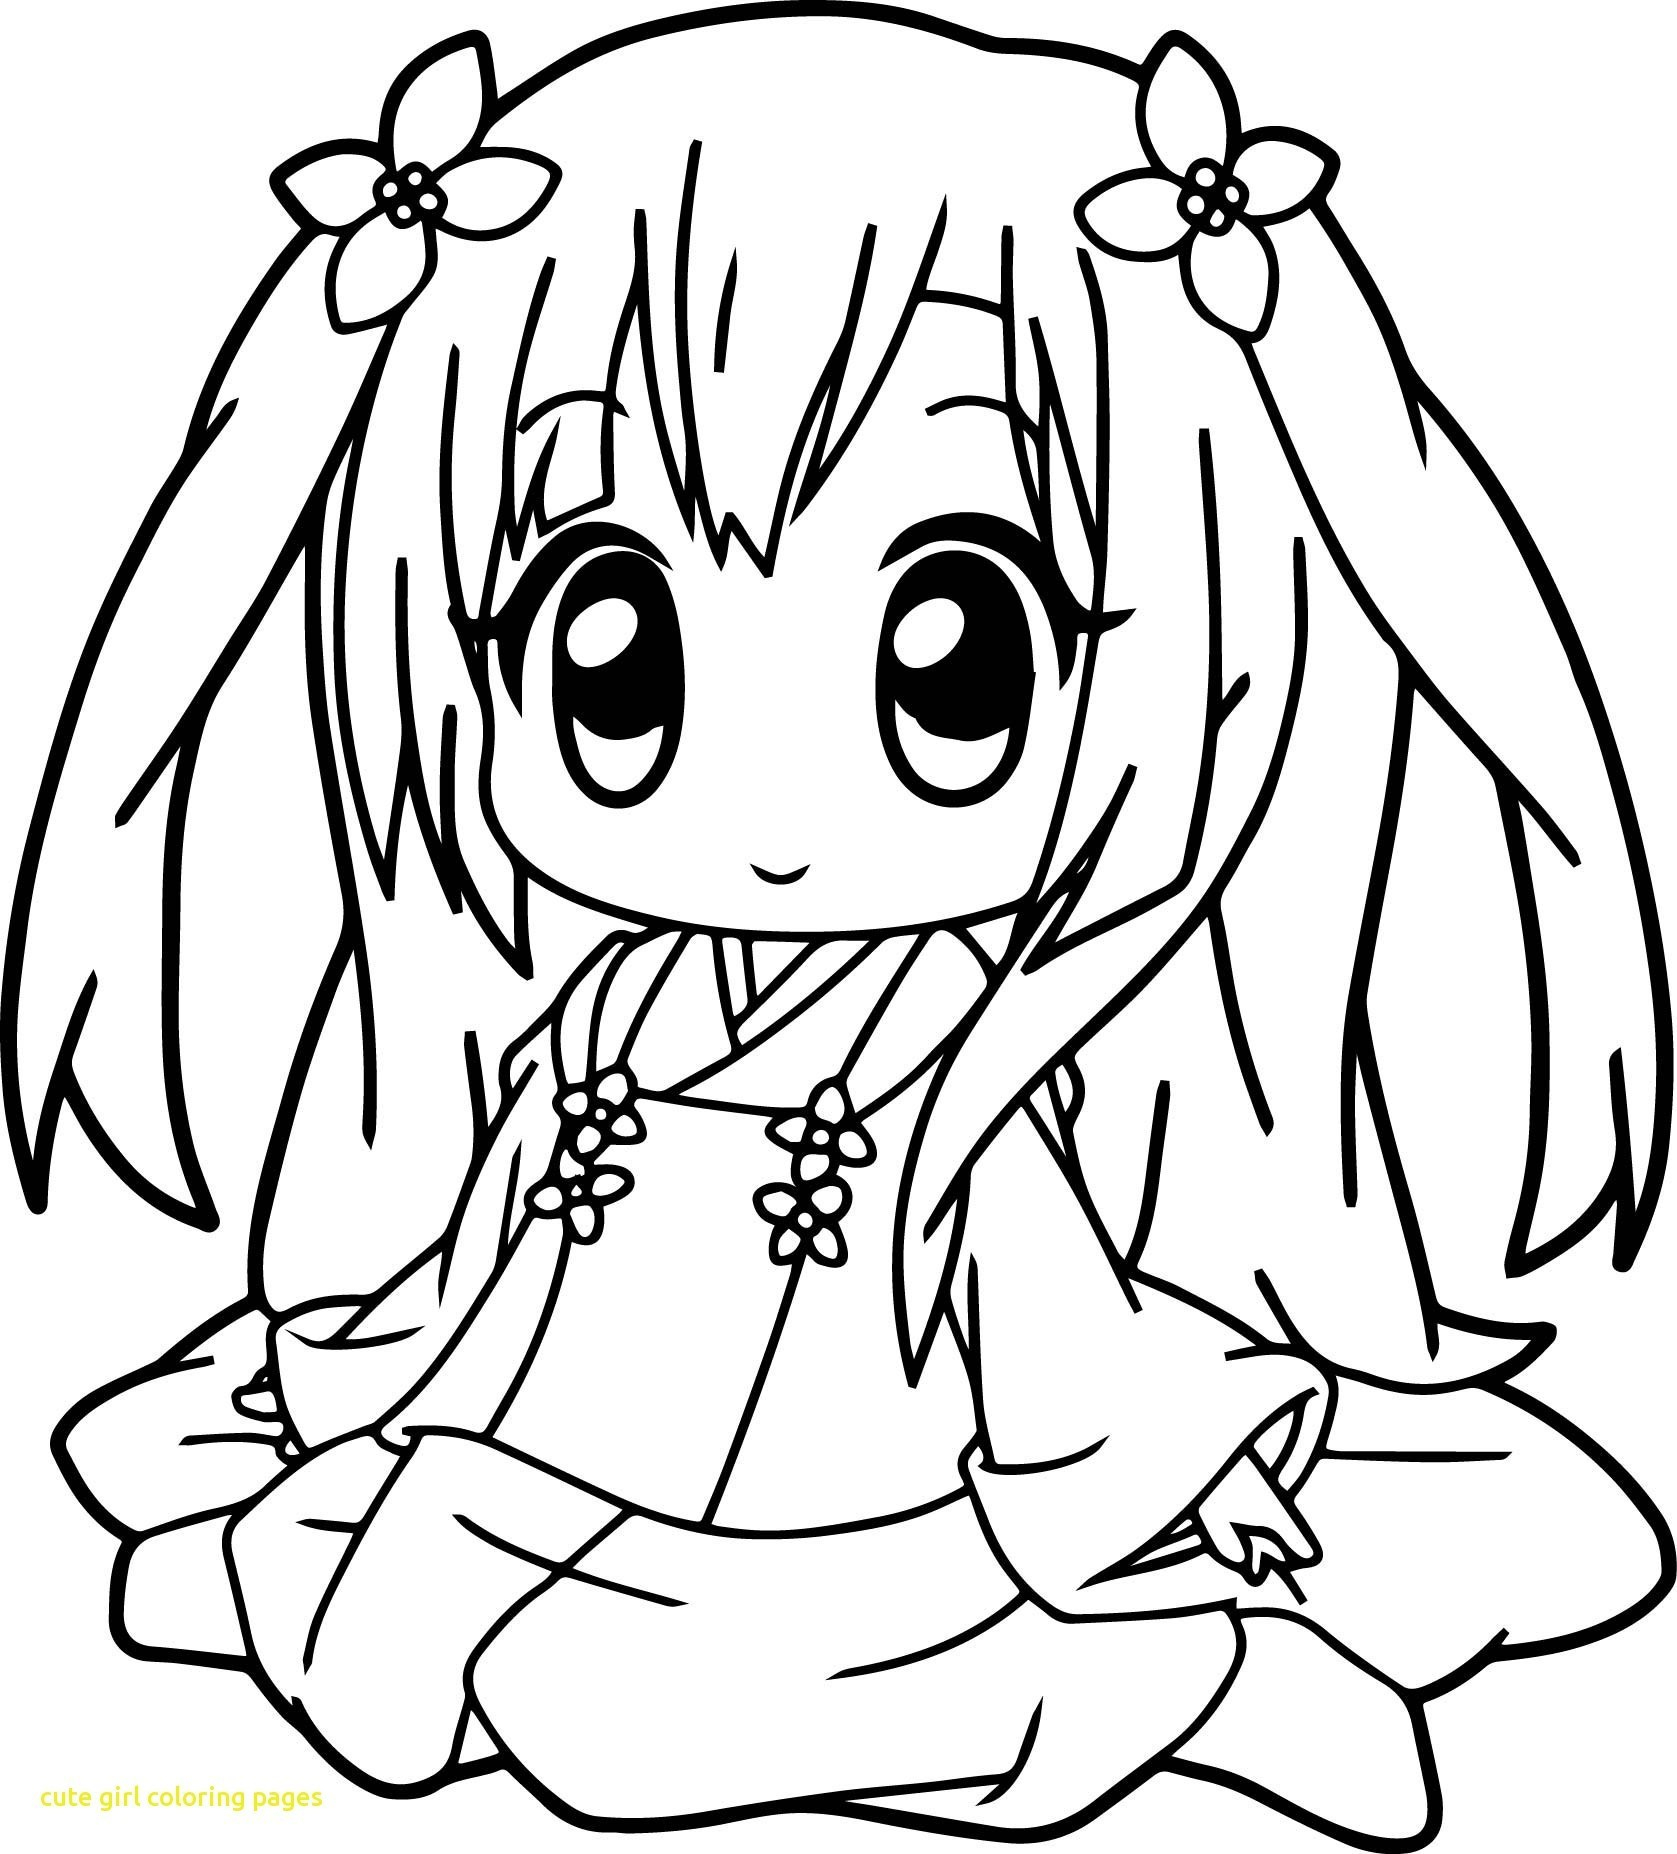 Cute Girl Coloring Pages Cute Anime Color Pages To Print In Girl Colouring  Pdf Easy Iydunetwork - birijus.com